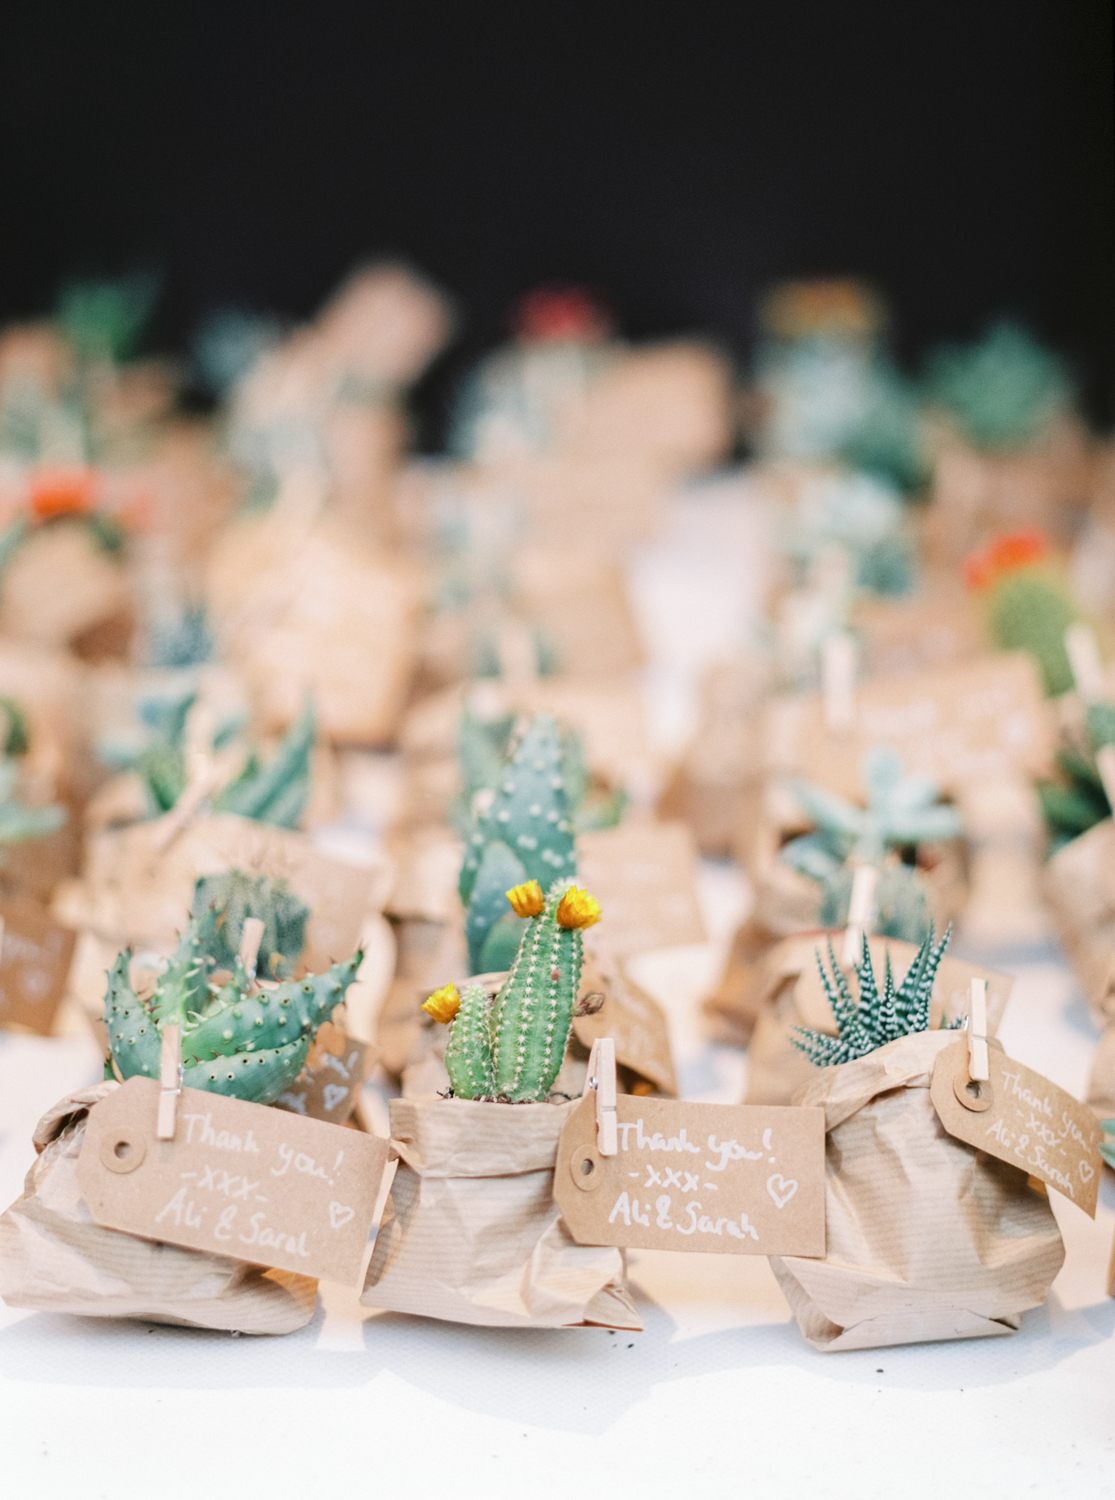 Mini Cactus Wedding Favors in Kraft Paper Bags